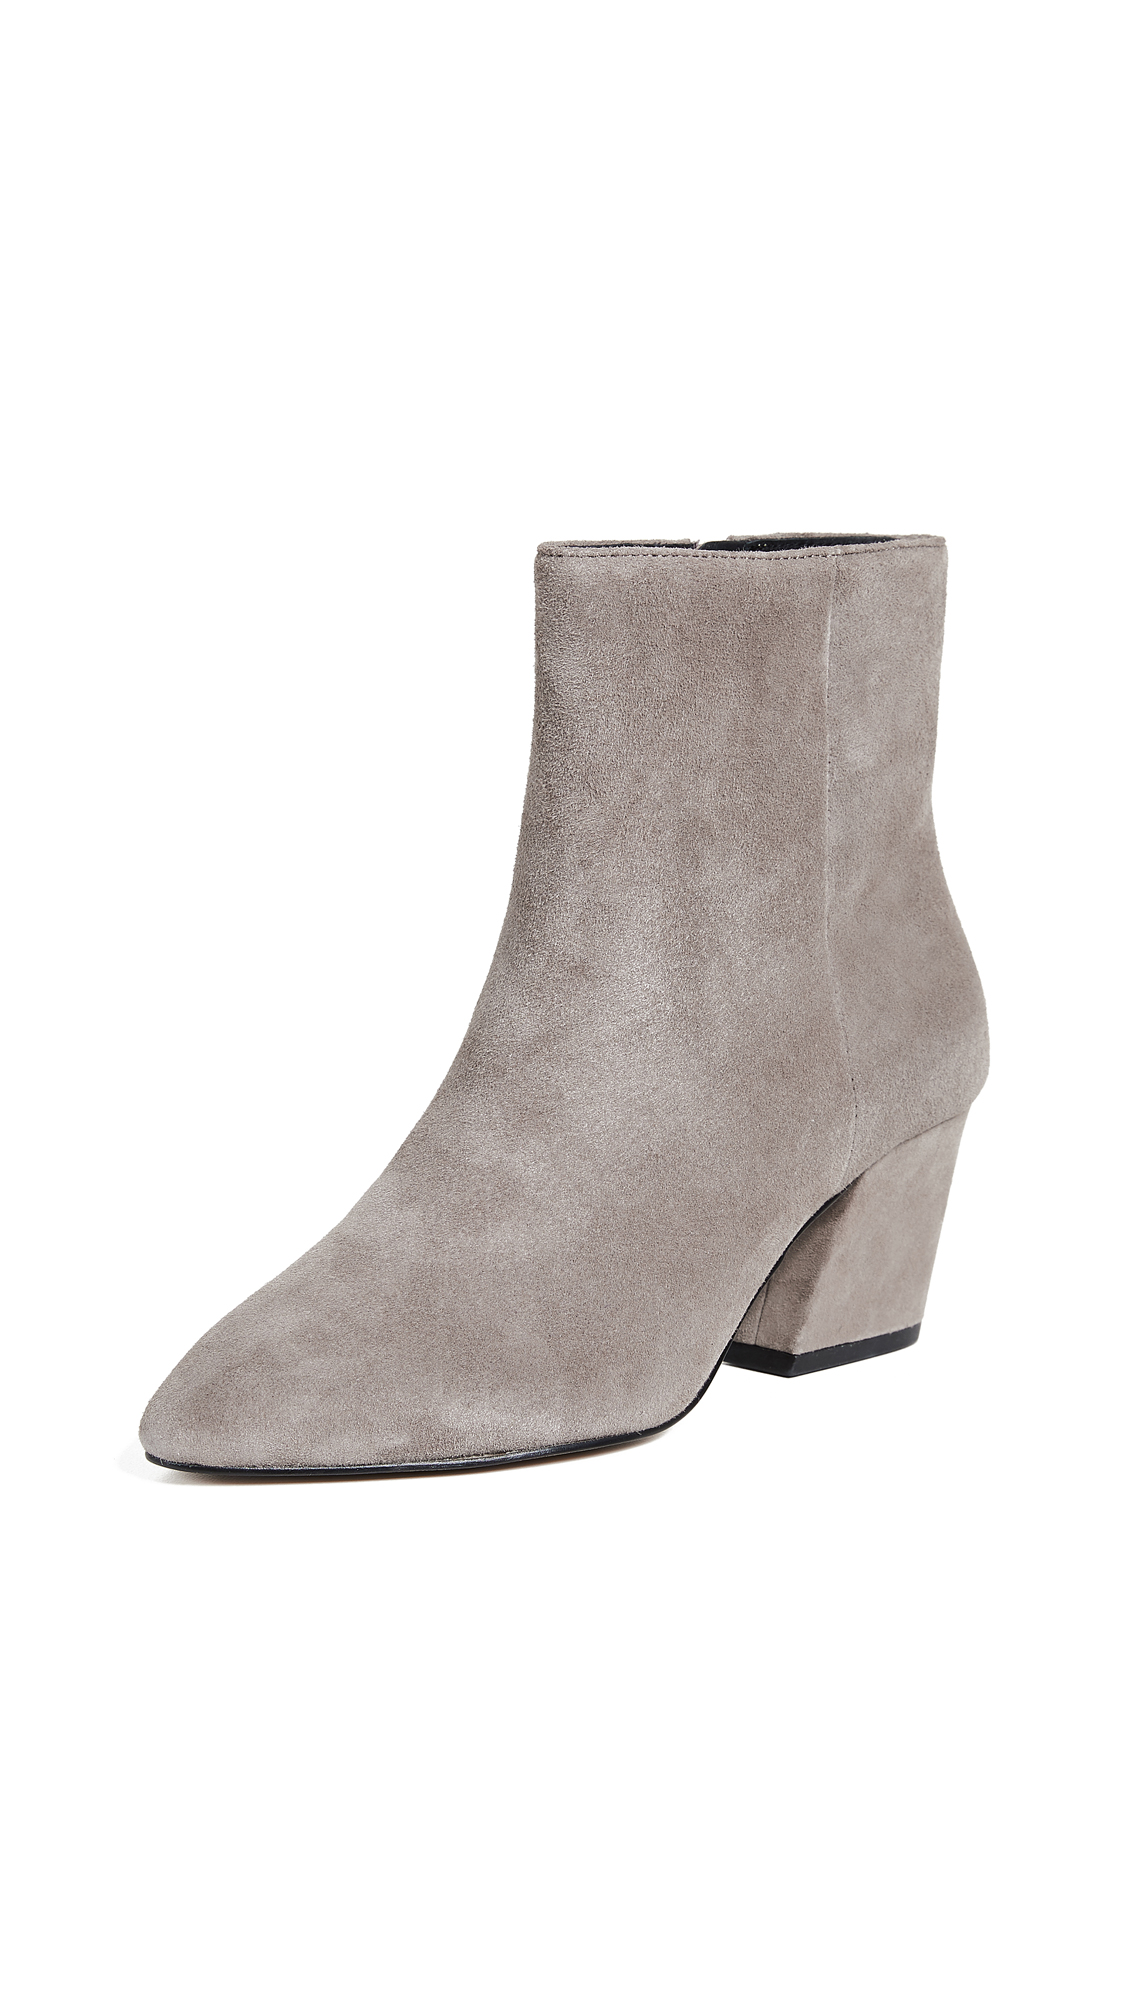 Botkier Sasha Point Toe Booties - Winter Grey